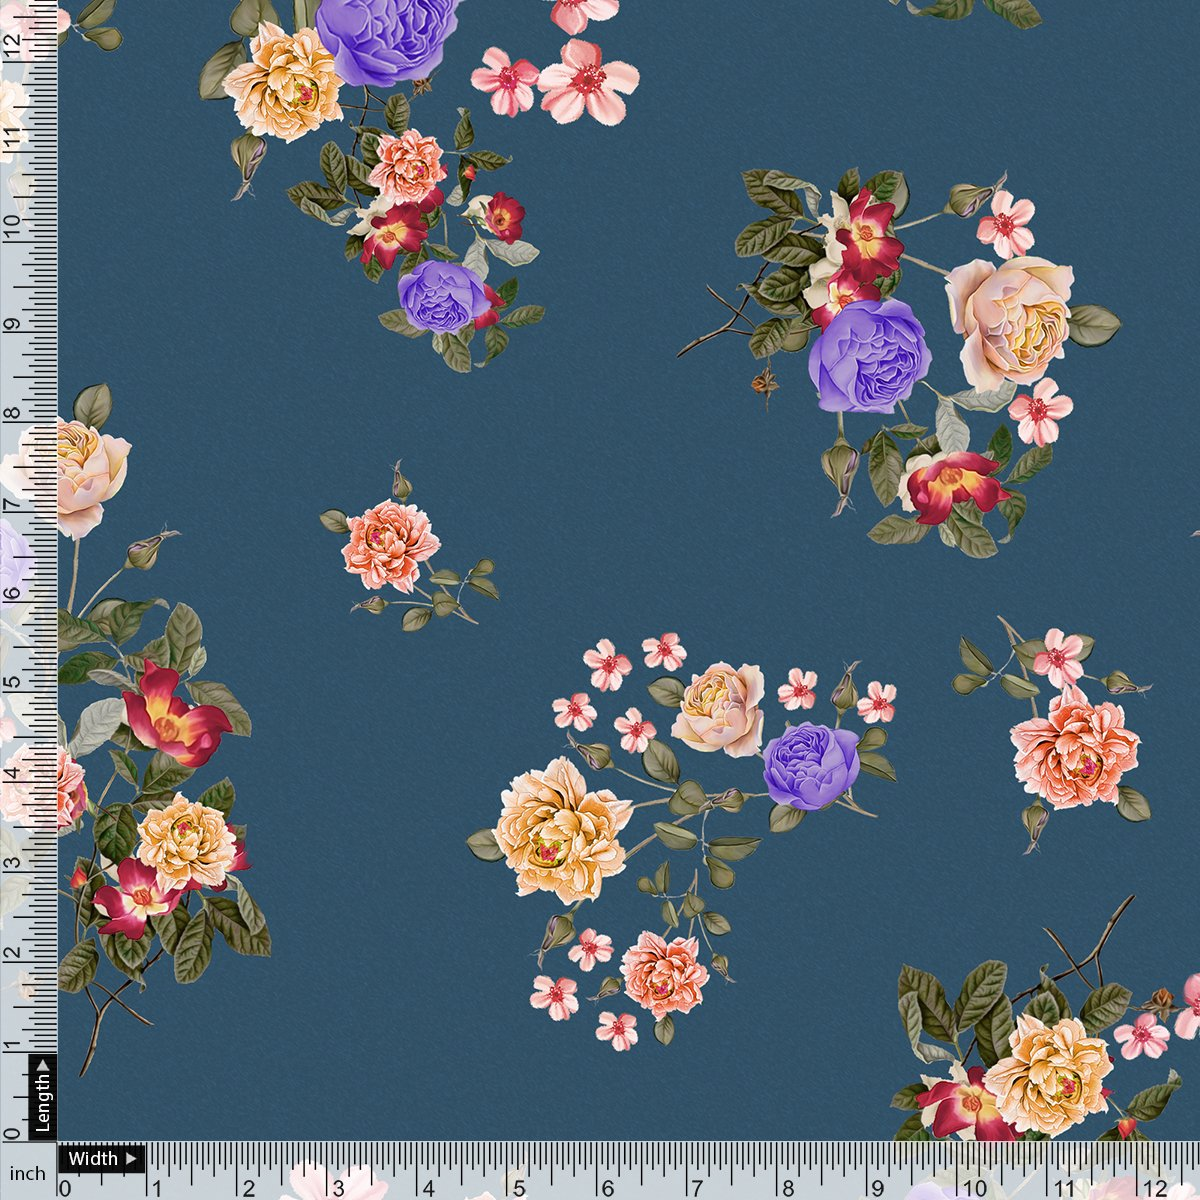 Colourful Flower Bunch Digital Printed Fabric - Japan Satin